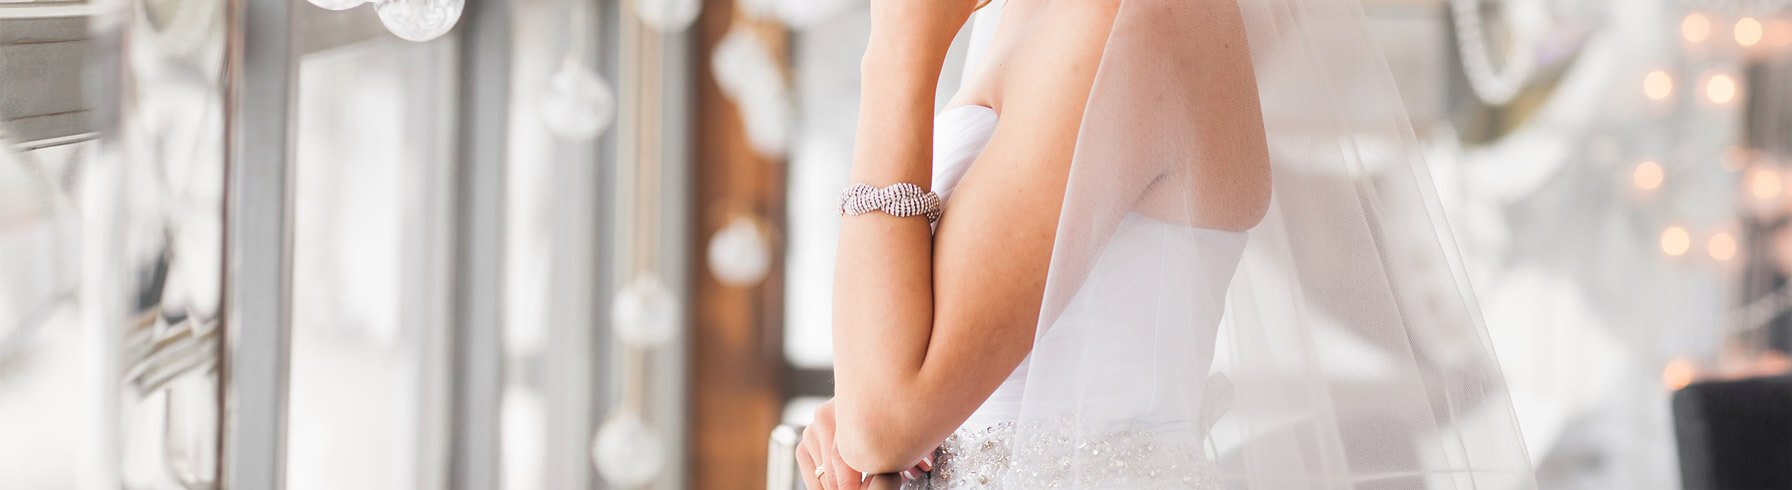 Second hand wedding dresses and pre owned bridal gowns for Sell your wedding dress online for free